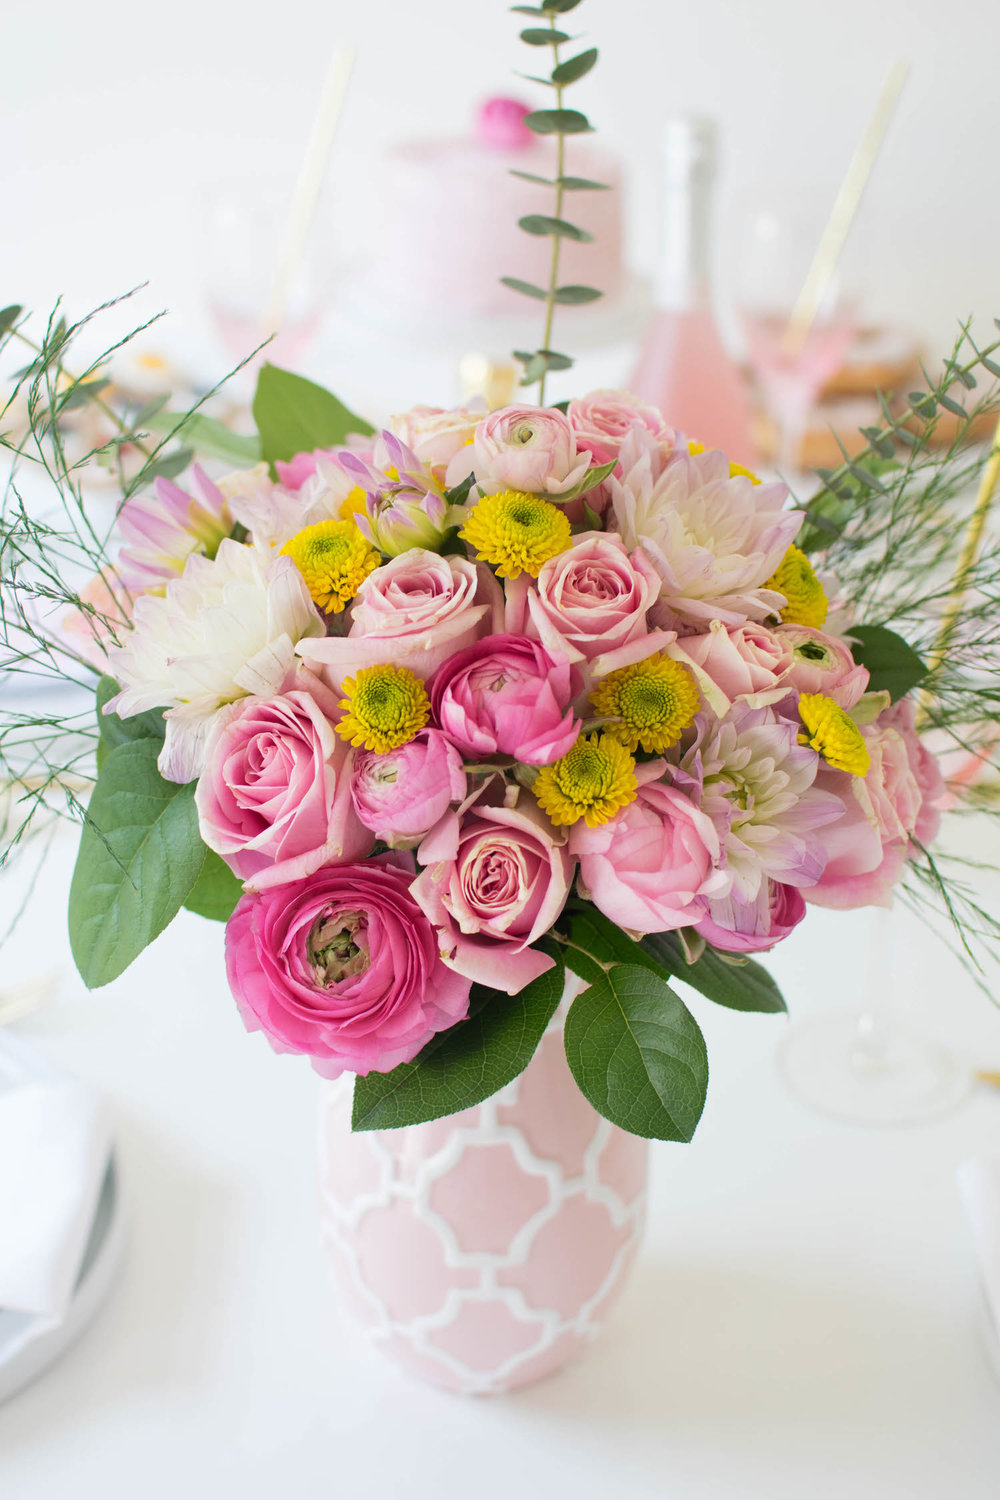 creative-diy-wedding-ideas-spring-brunch-pink-flowers.jpg